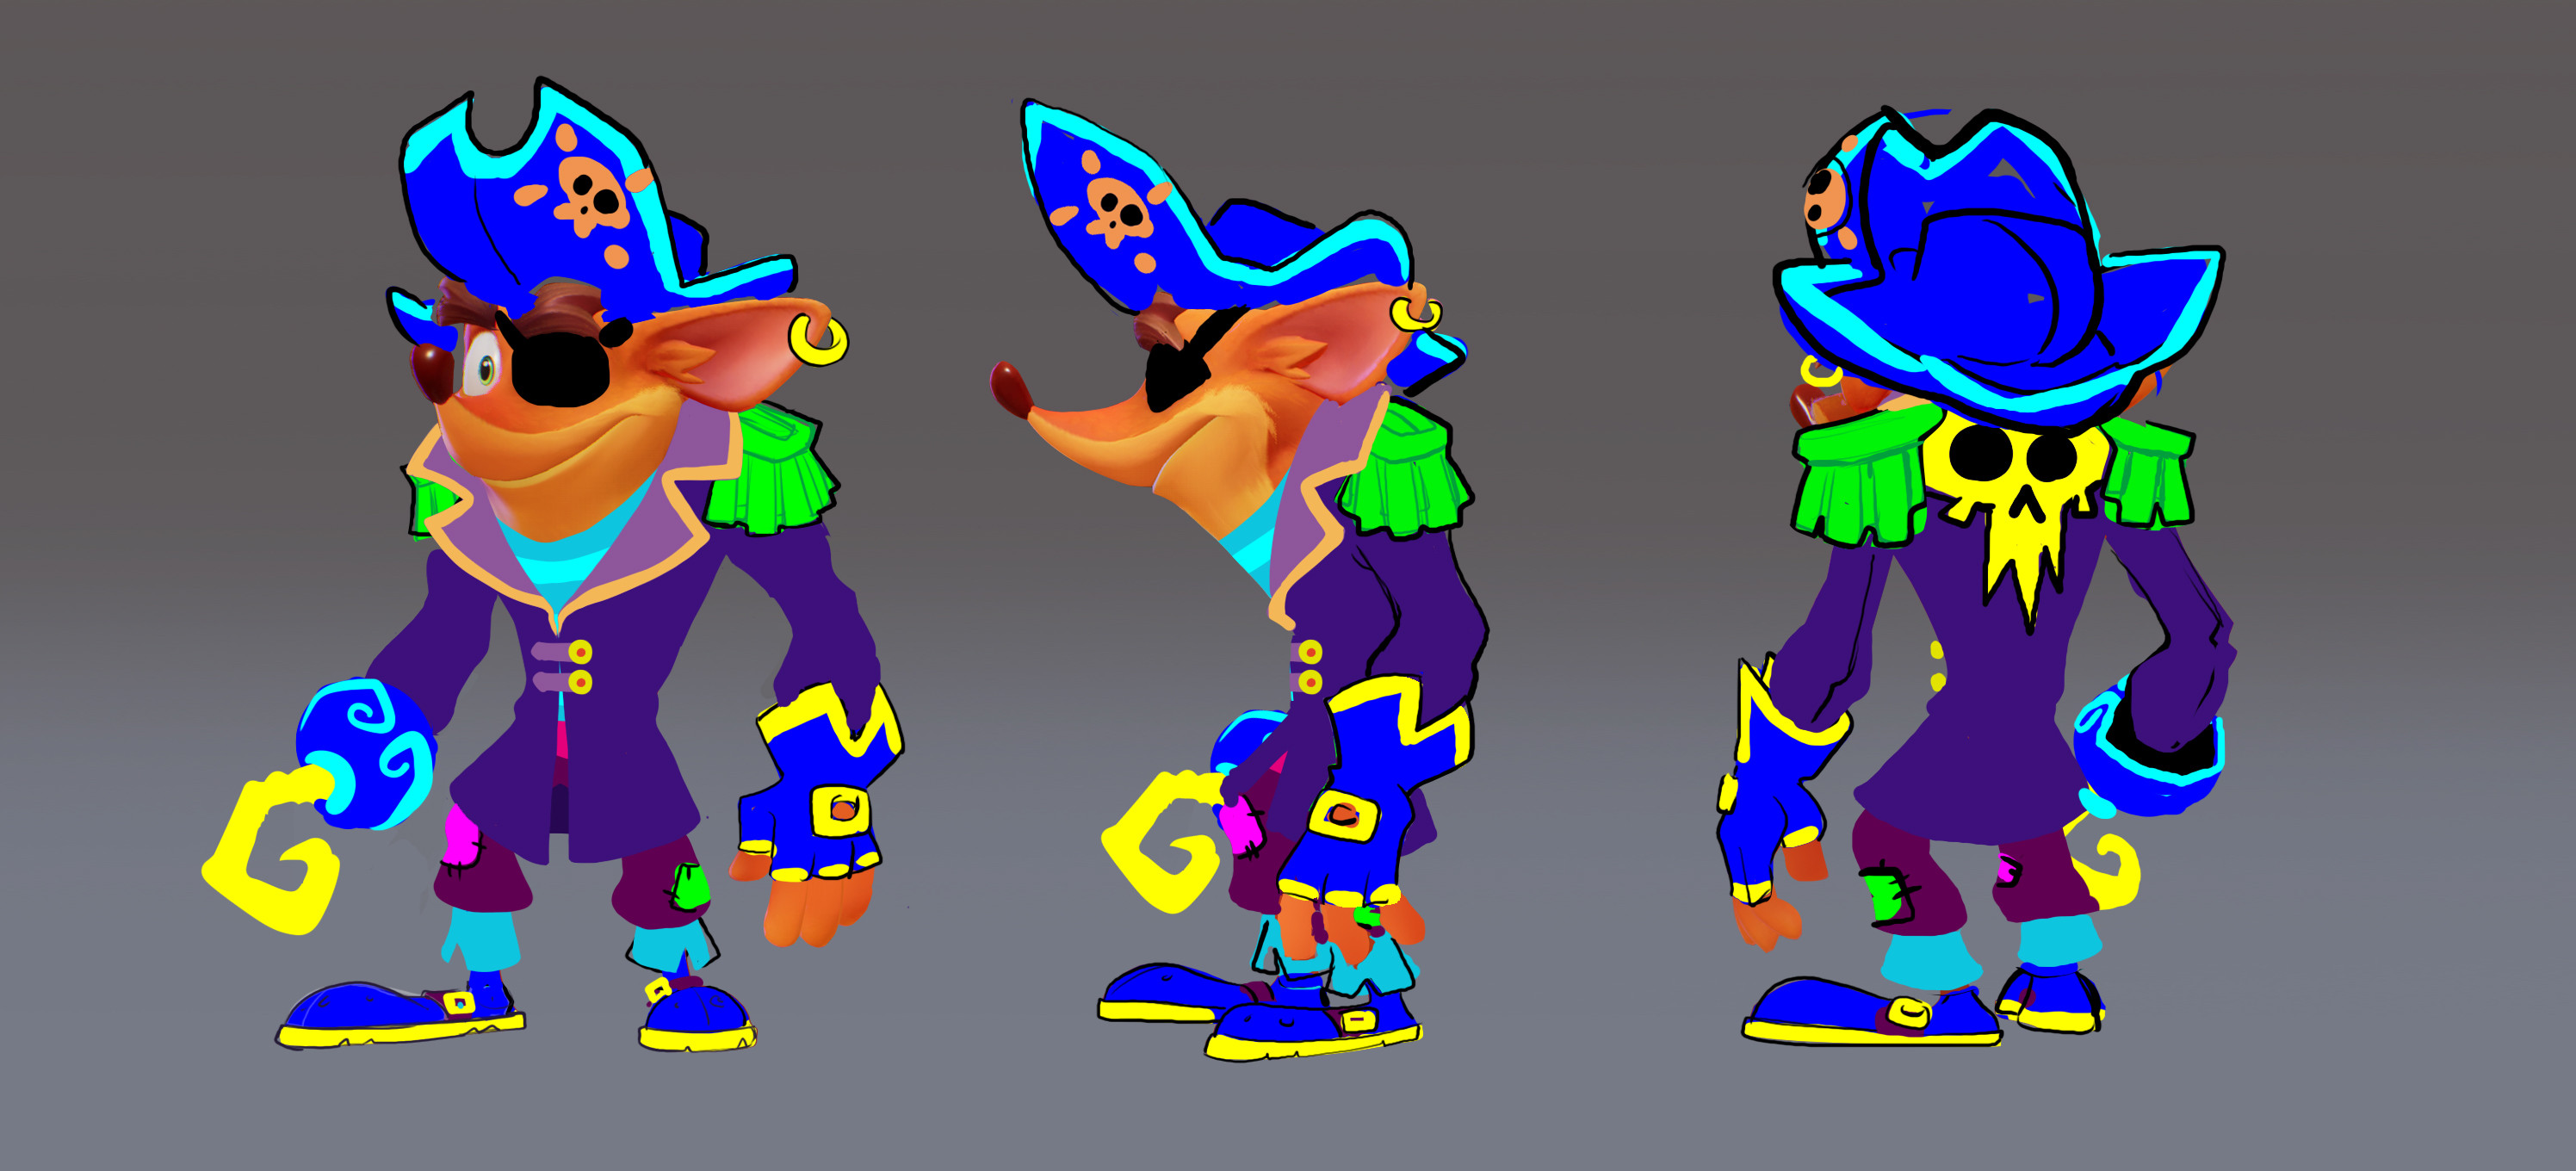 3rd round of Crash Pirate ideation blobbys, front middle and back.